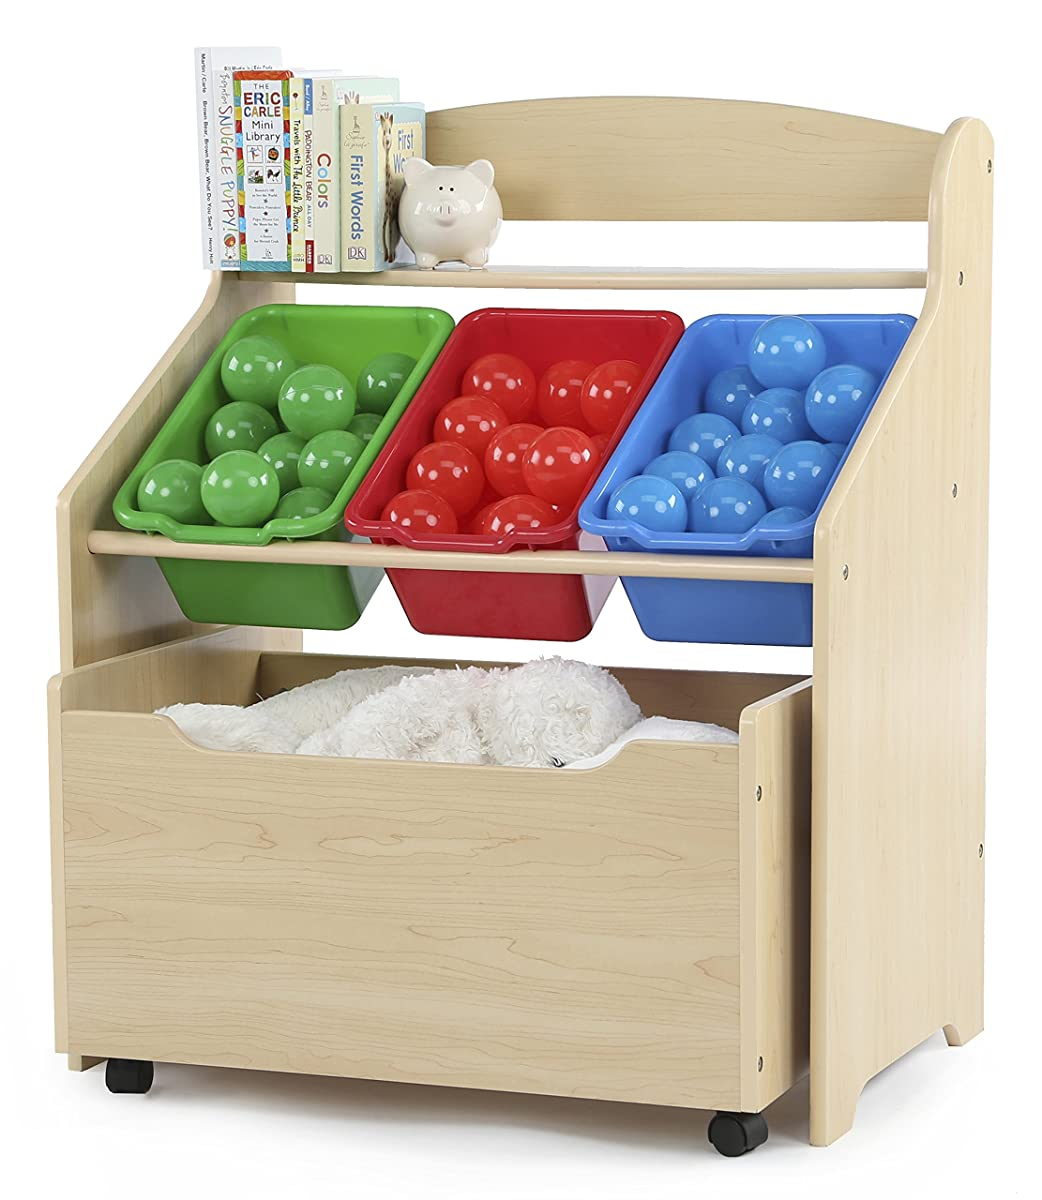 Tot Tutors Kids Store-All Unit, Natural Finish